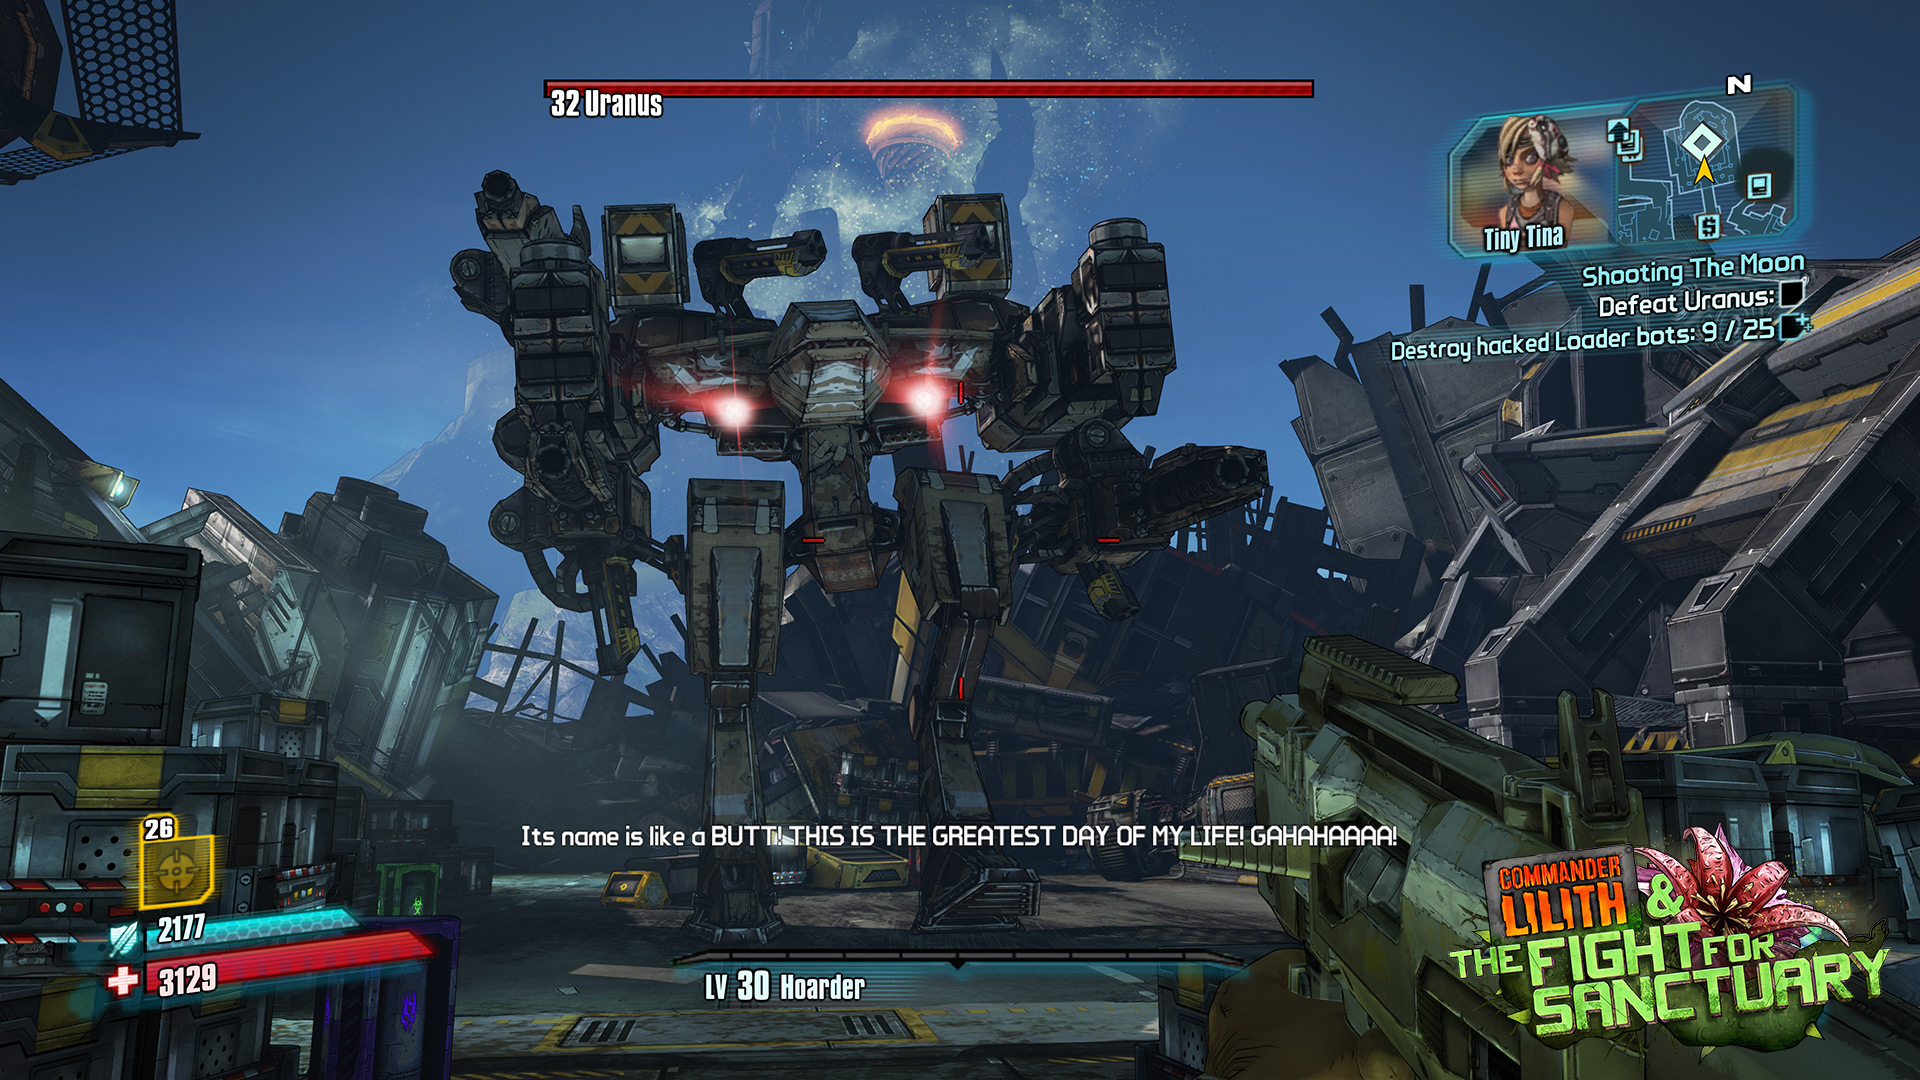 Commander Lilith & the Fight for Sanctuary - Borderlands 2